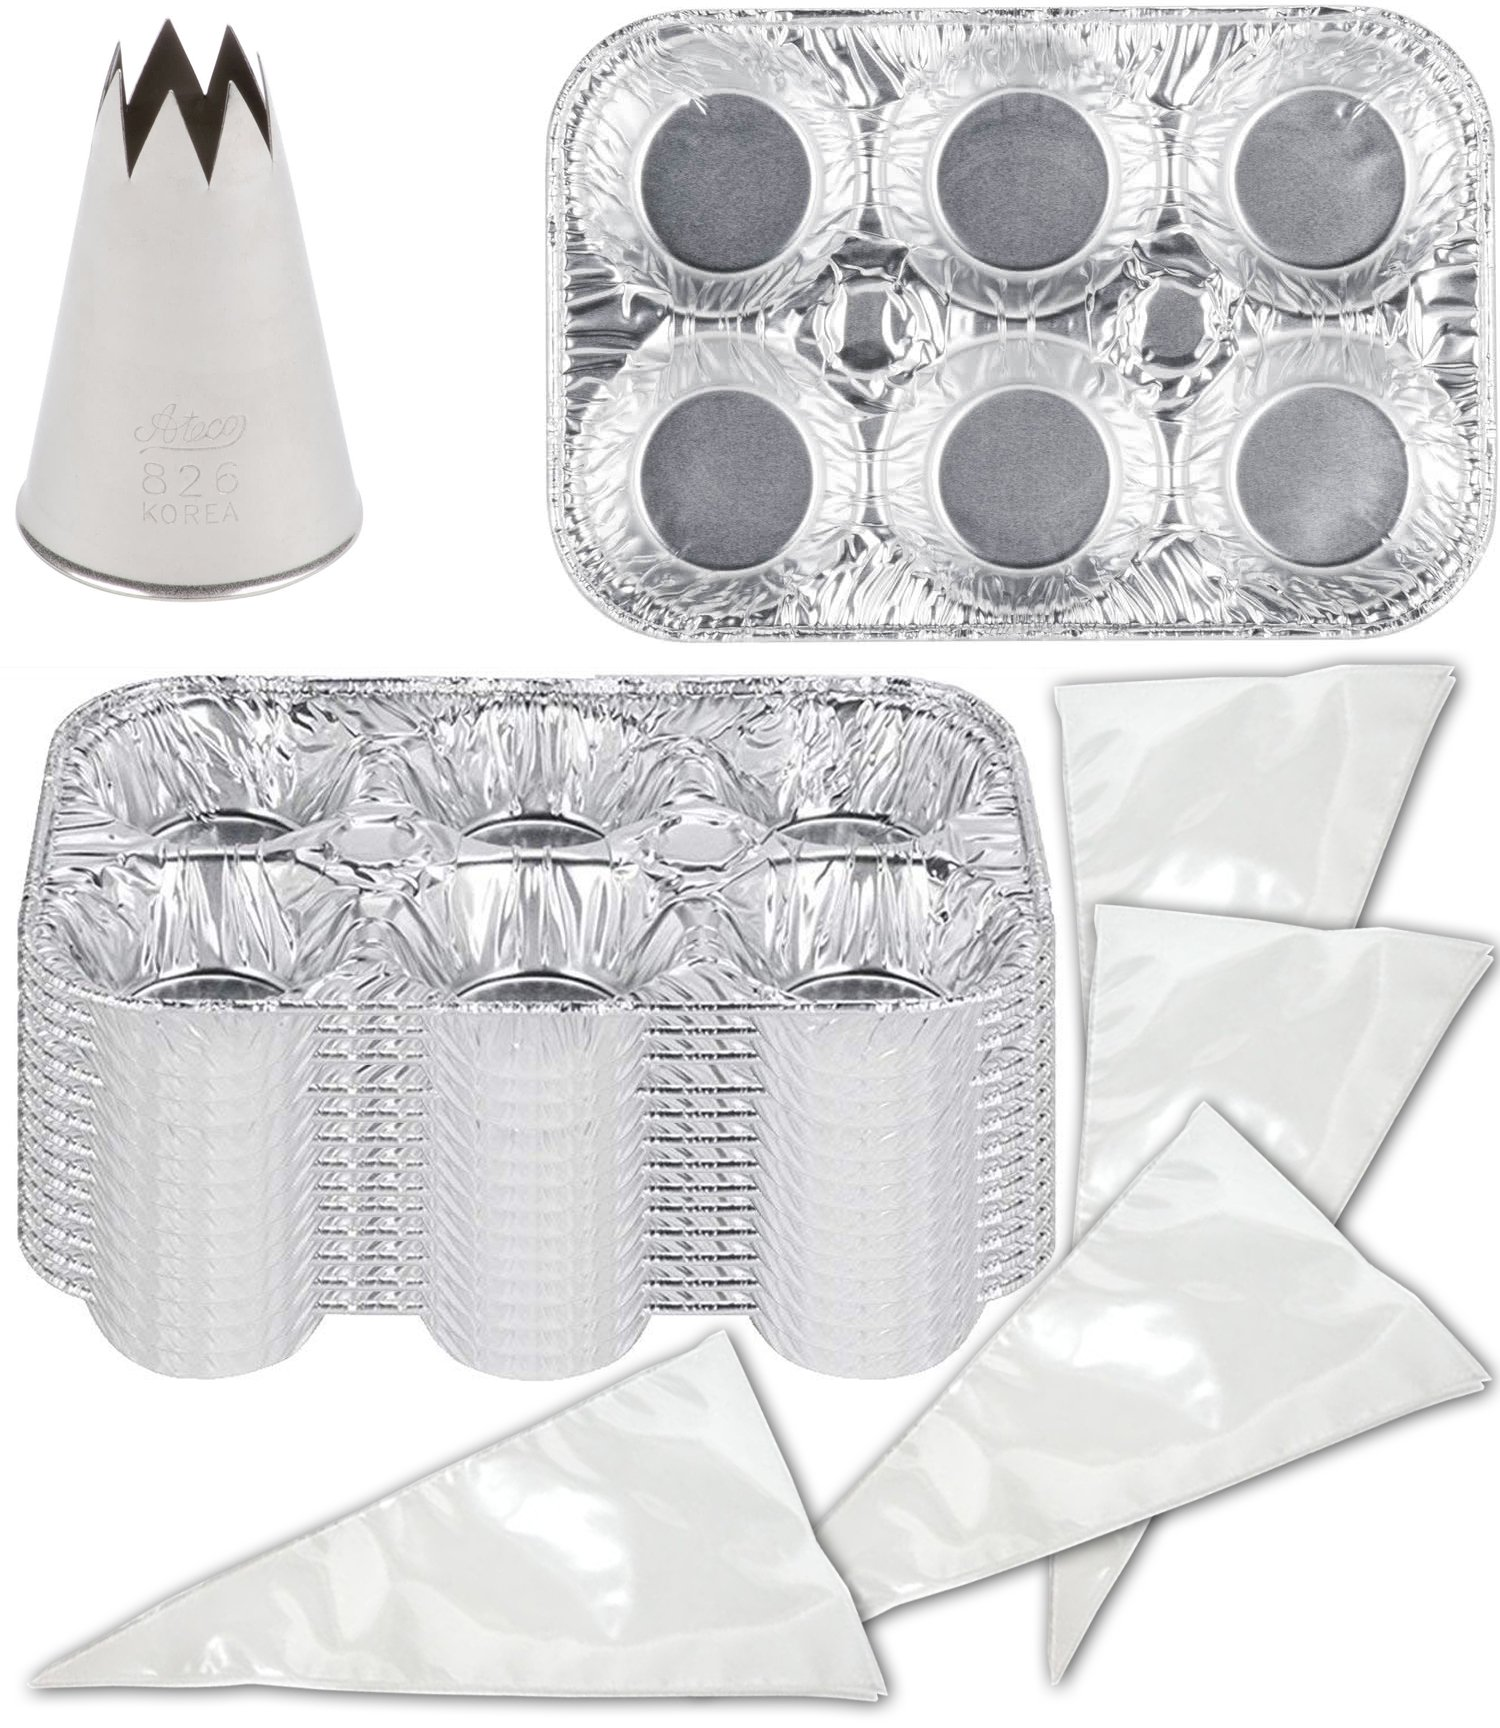 Tin Cupcake Muffin Pan Decorating Kit Stainless Steel Tube Piping tip + 10 Pastry Bags + Cupcake Muffin Tin 25 Party Baking Pack